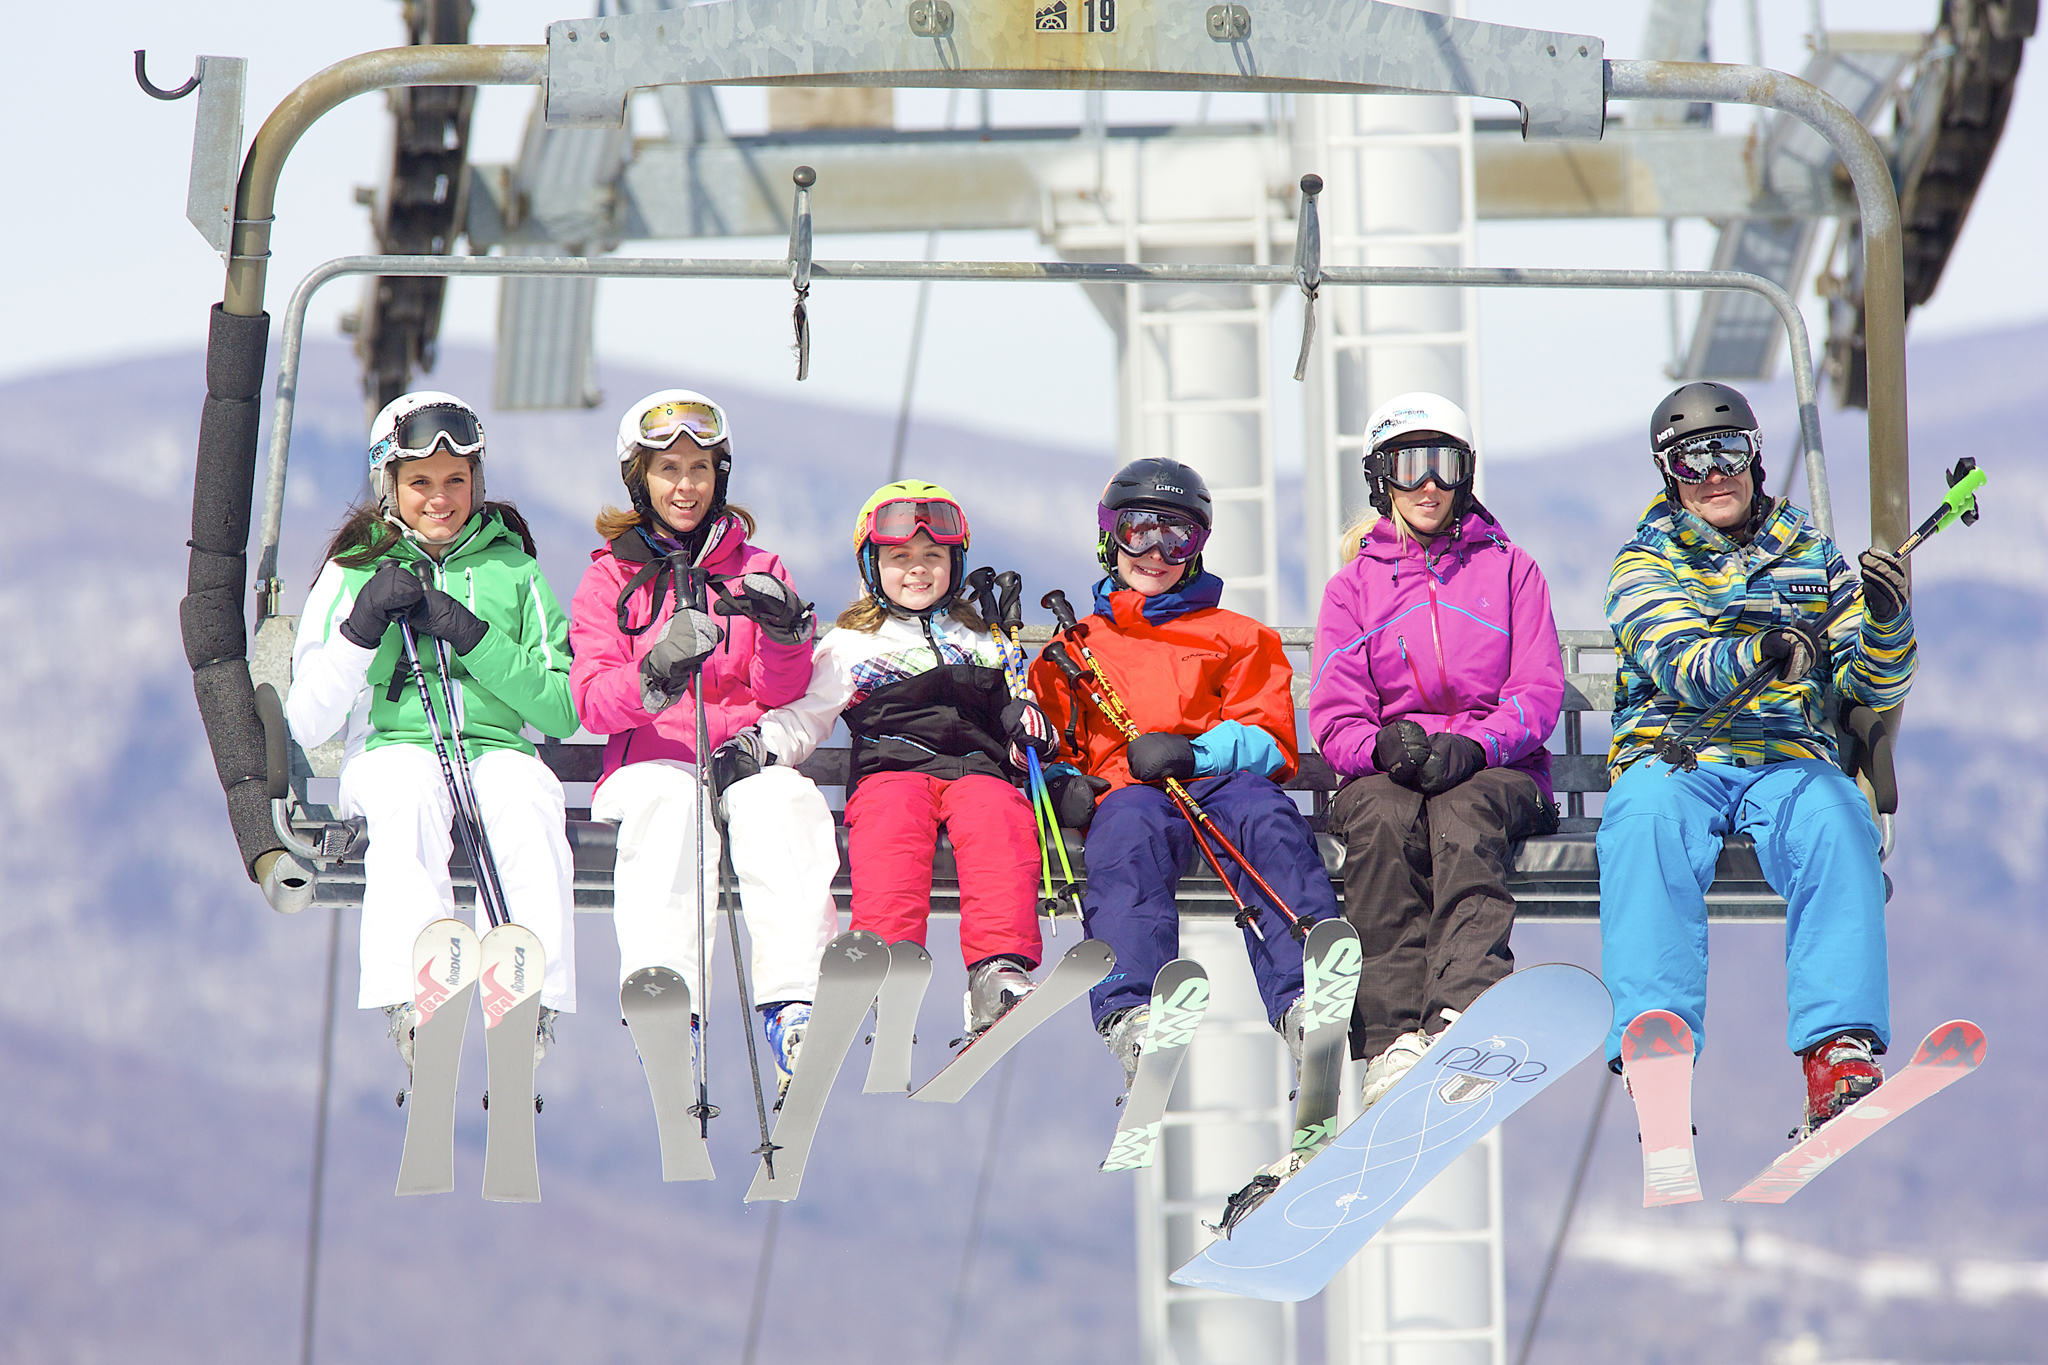 The best family ski resorts near NYC